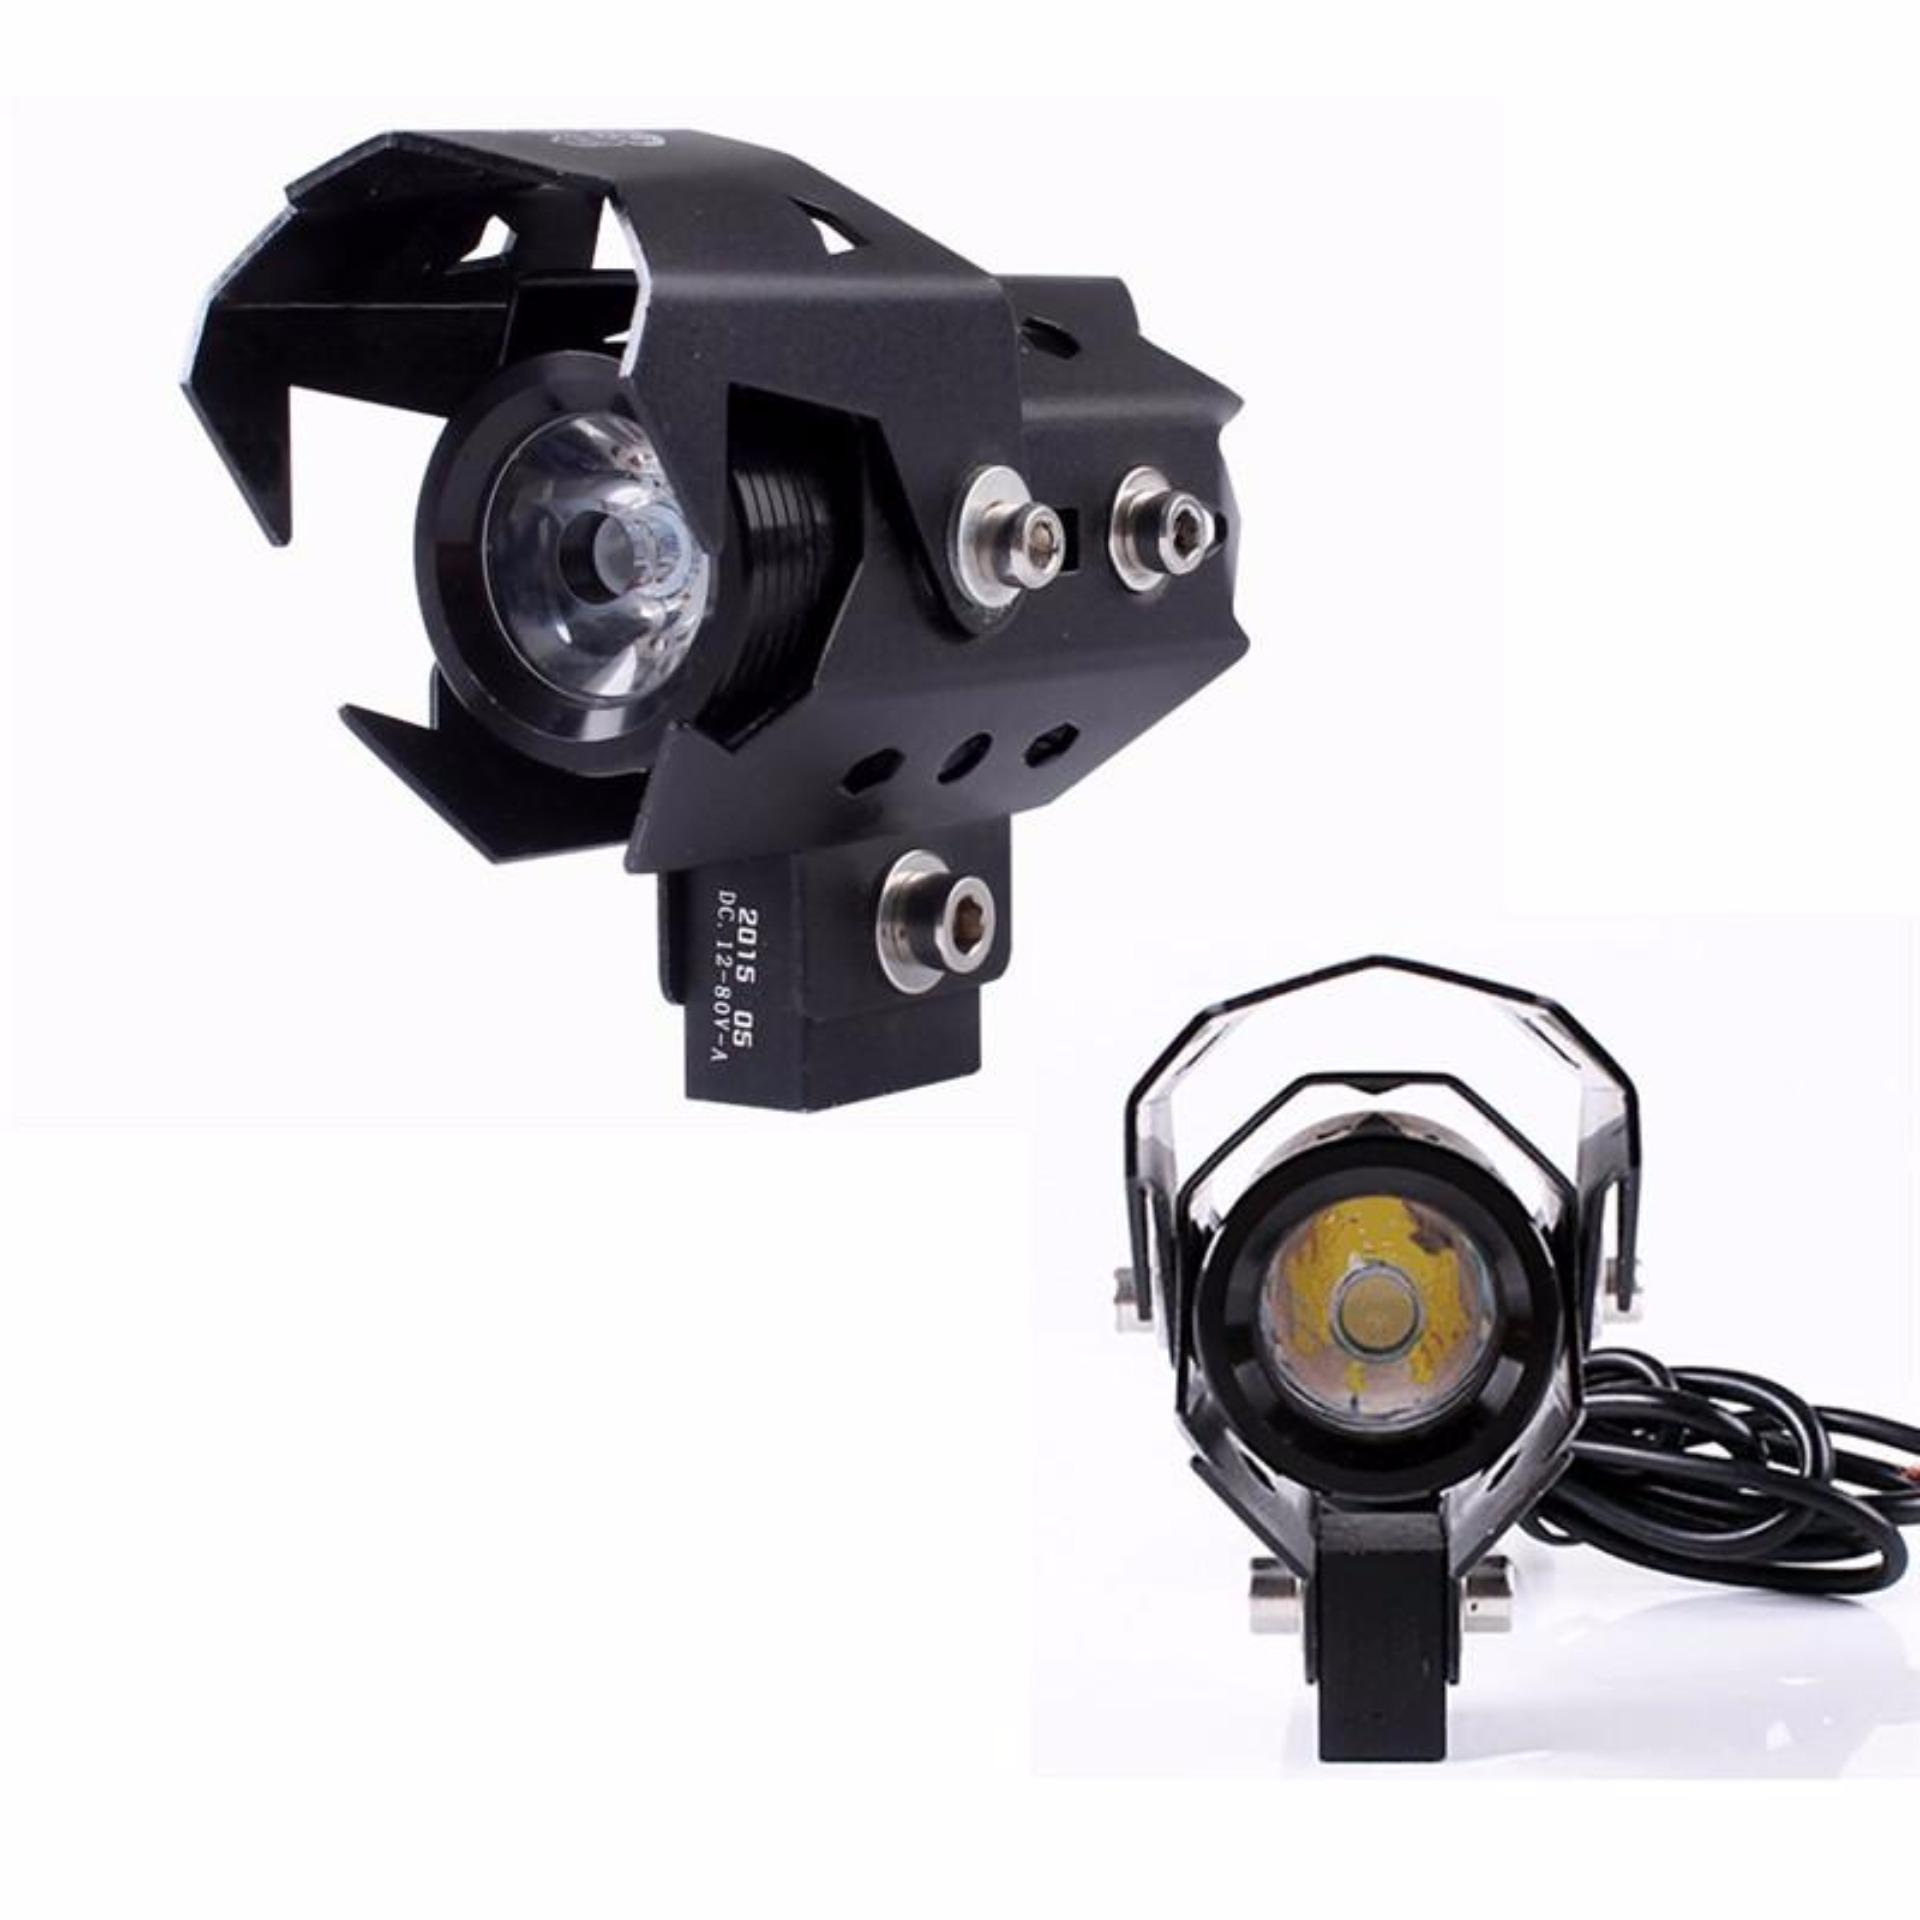 Lampu Sorot Tembak Led Rtd E05 Angel Eyes Mobil Motor